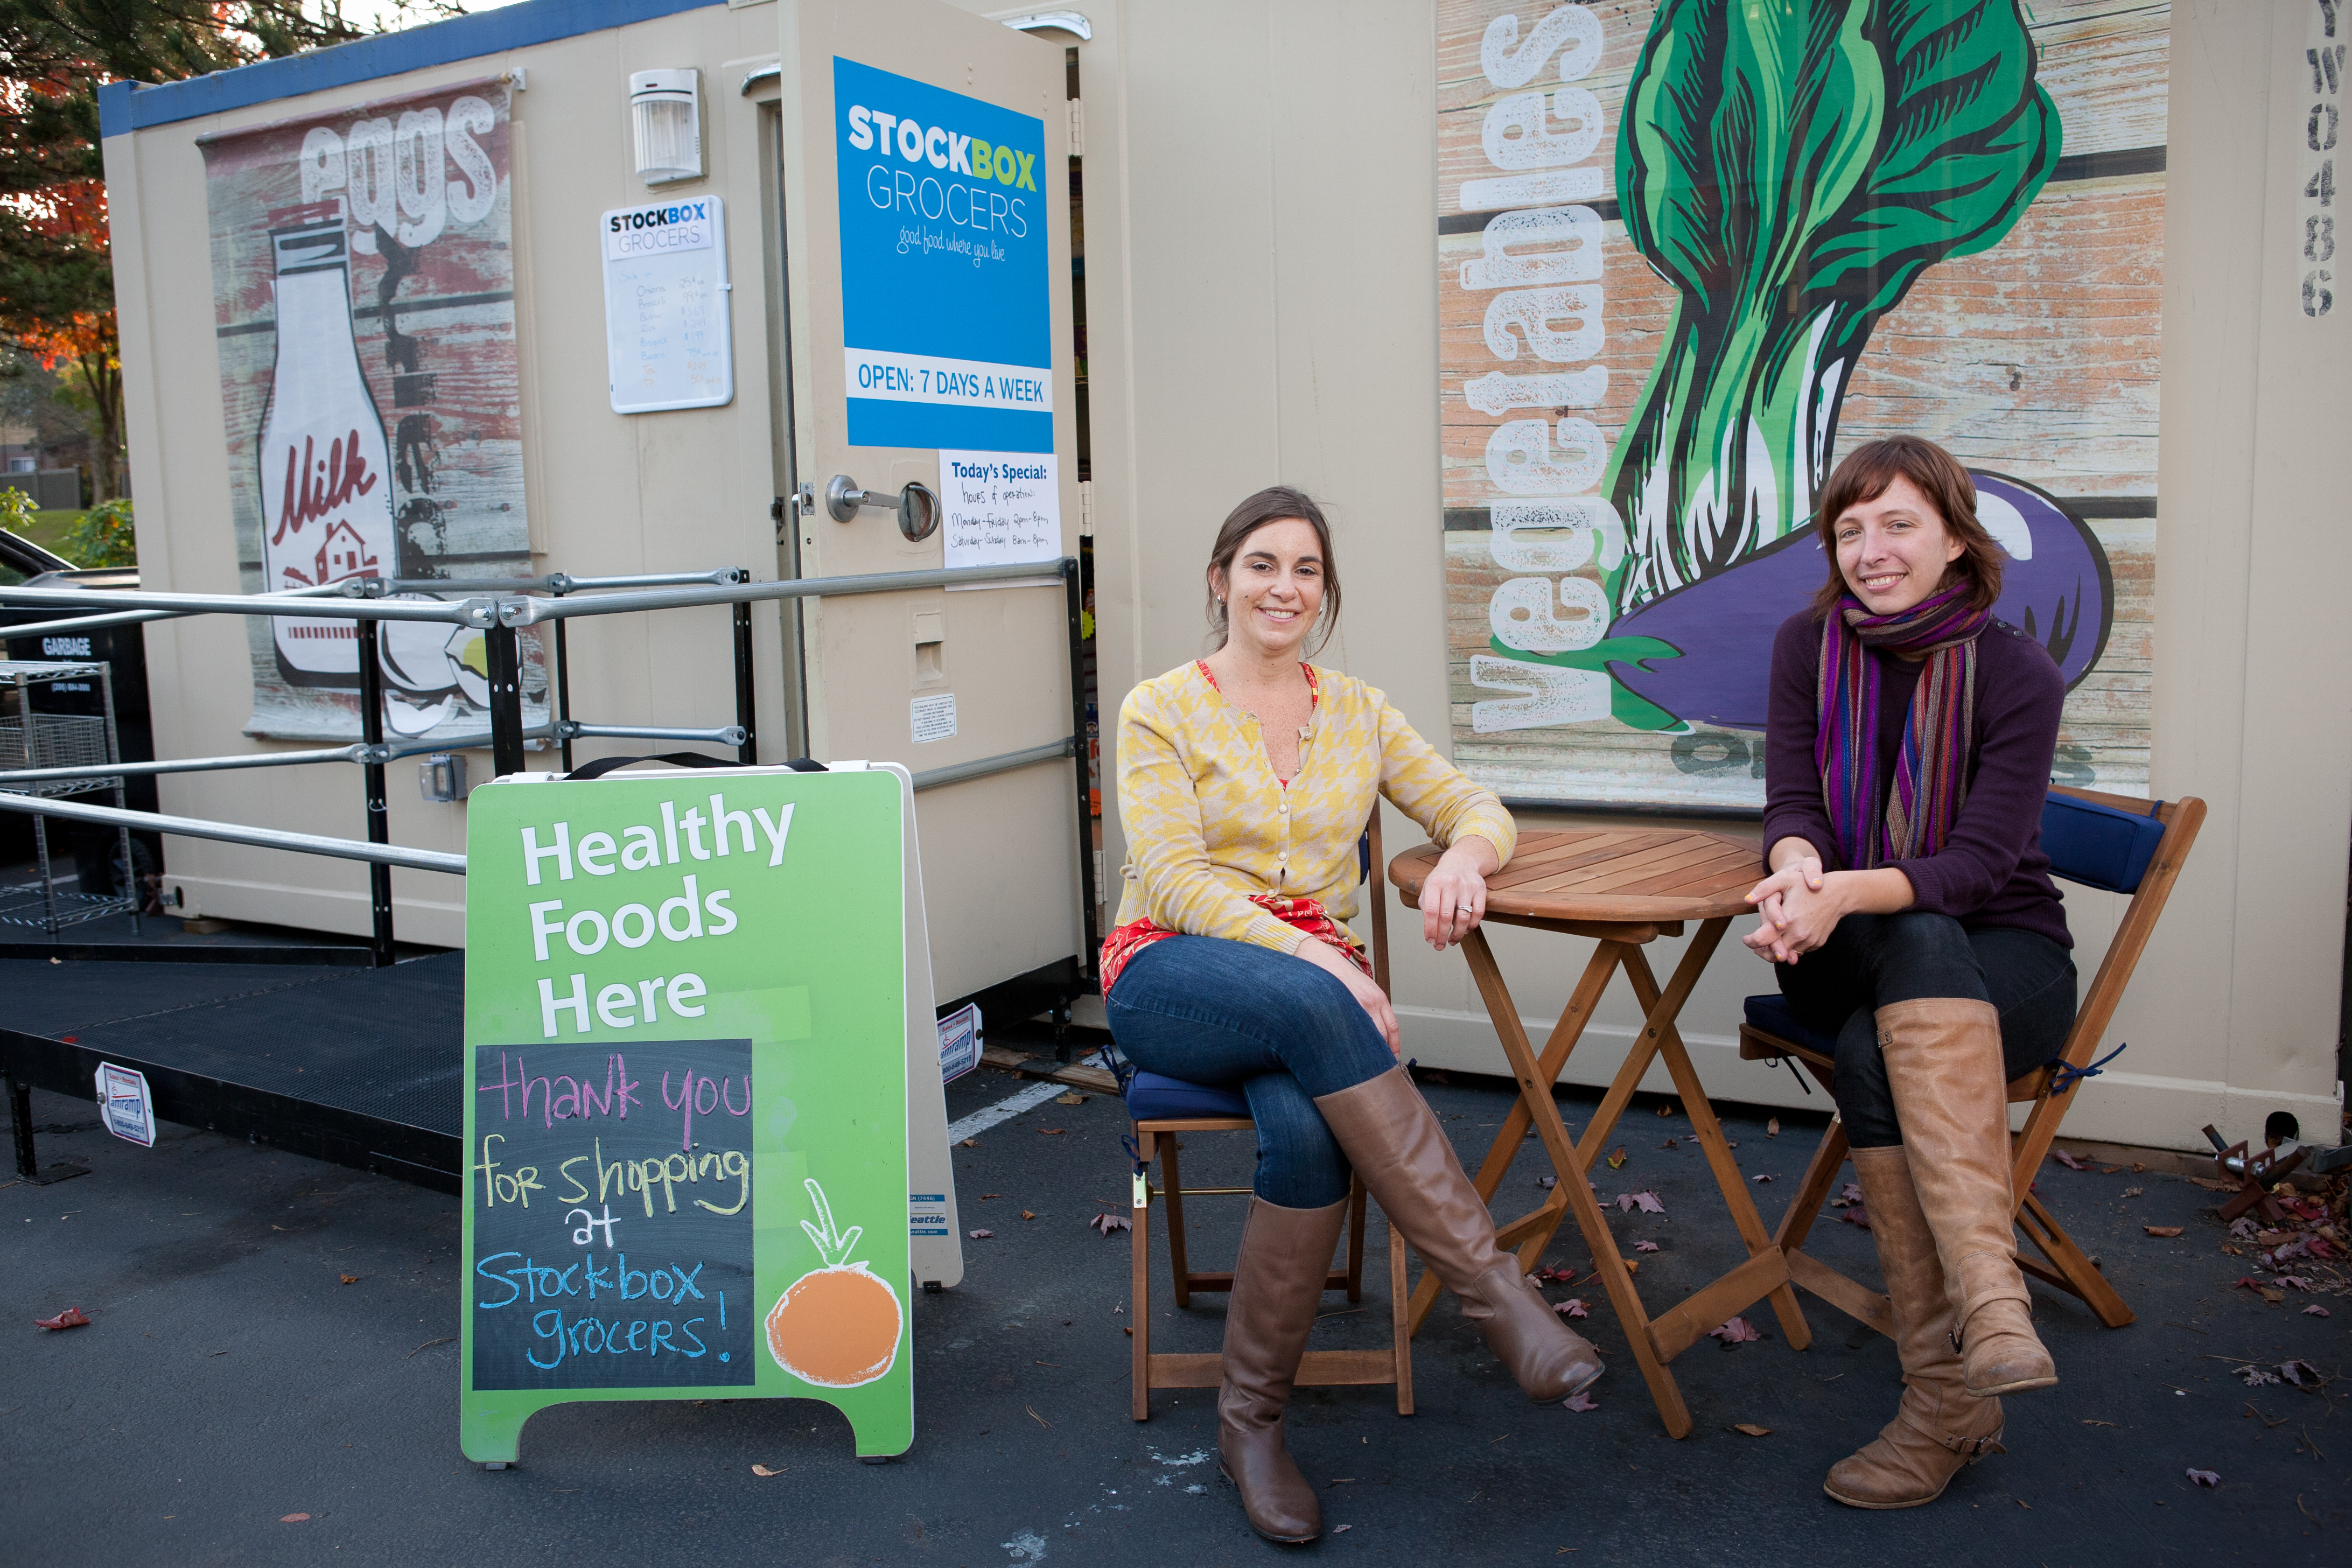 Carrie Ferrence and Jacqueline Gjurgevich of Stockbox Grocers